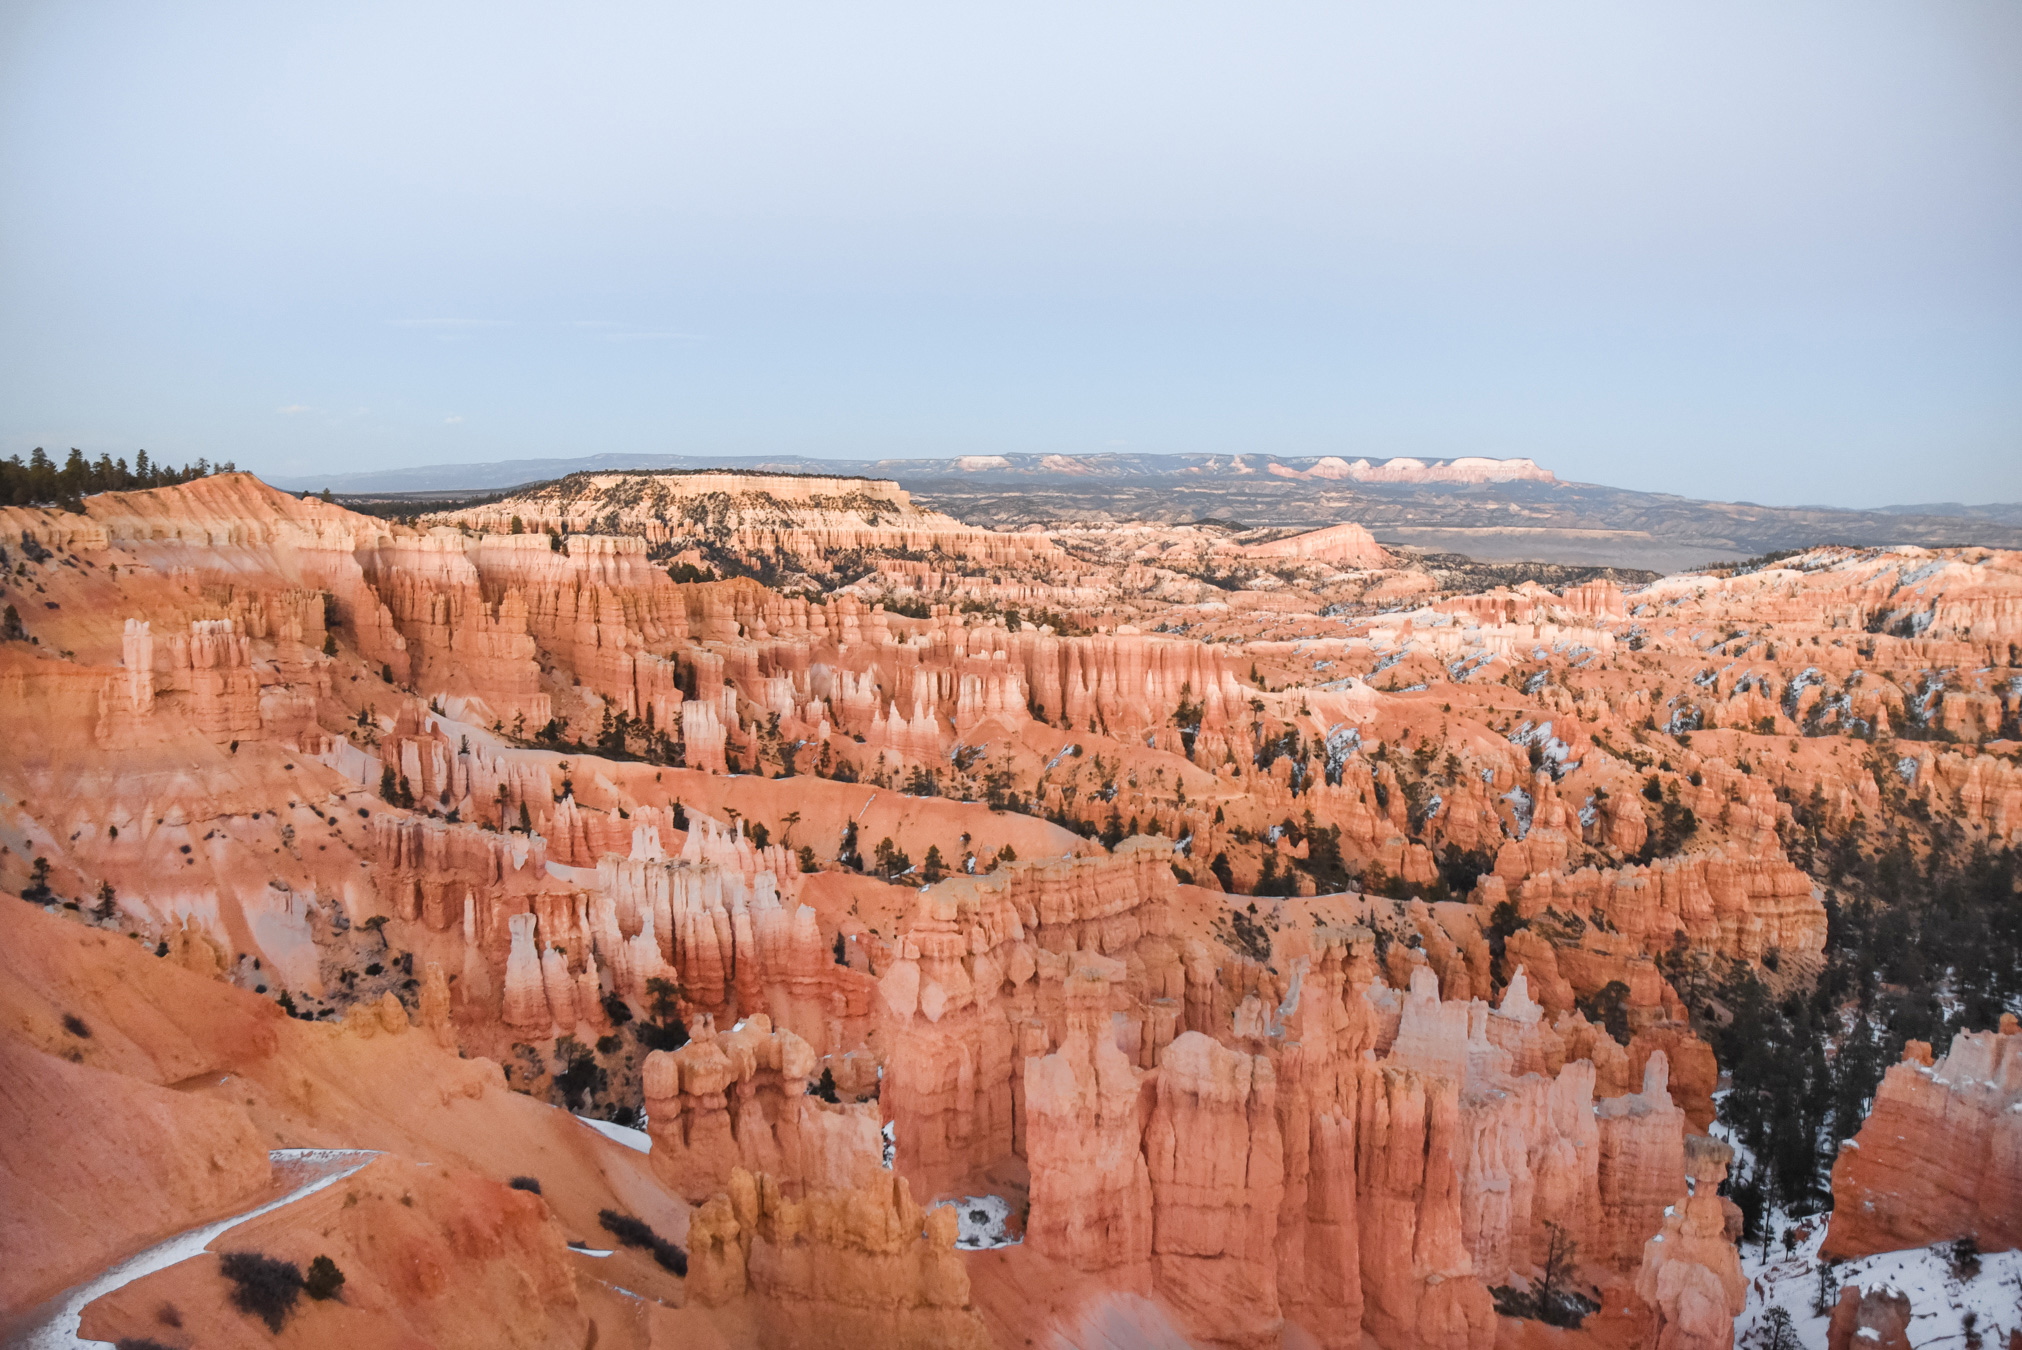 Blog-Mode-and-the-city-Lifestyle-bryce-canyon-11